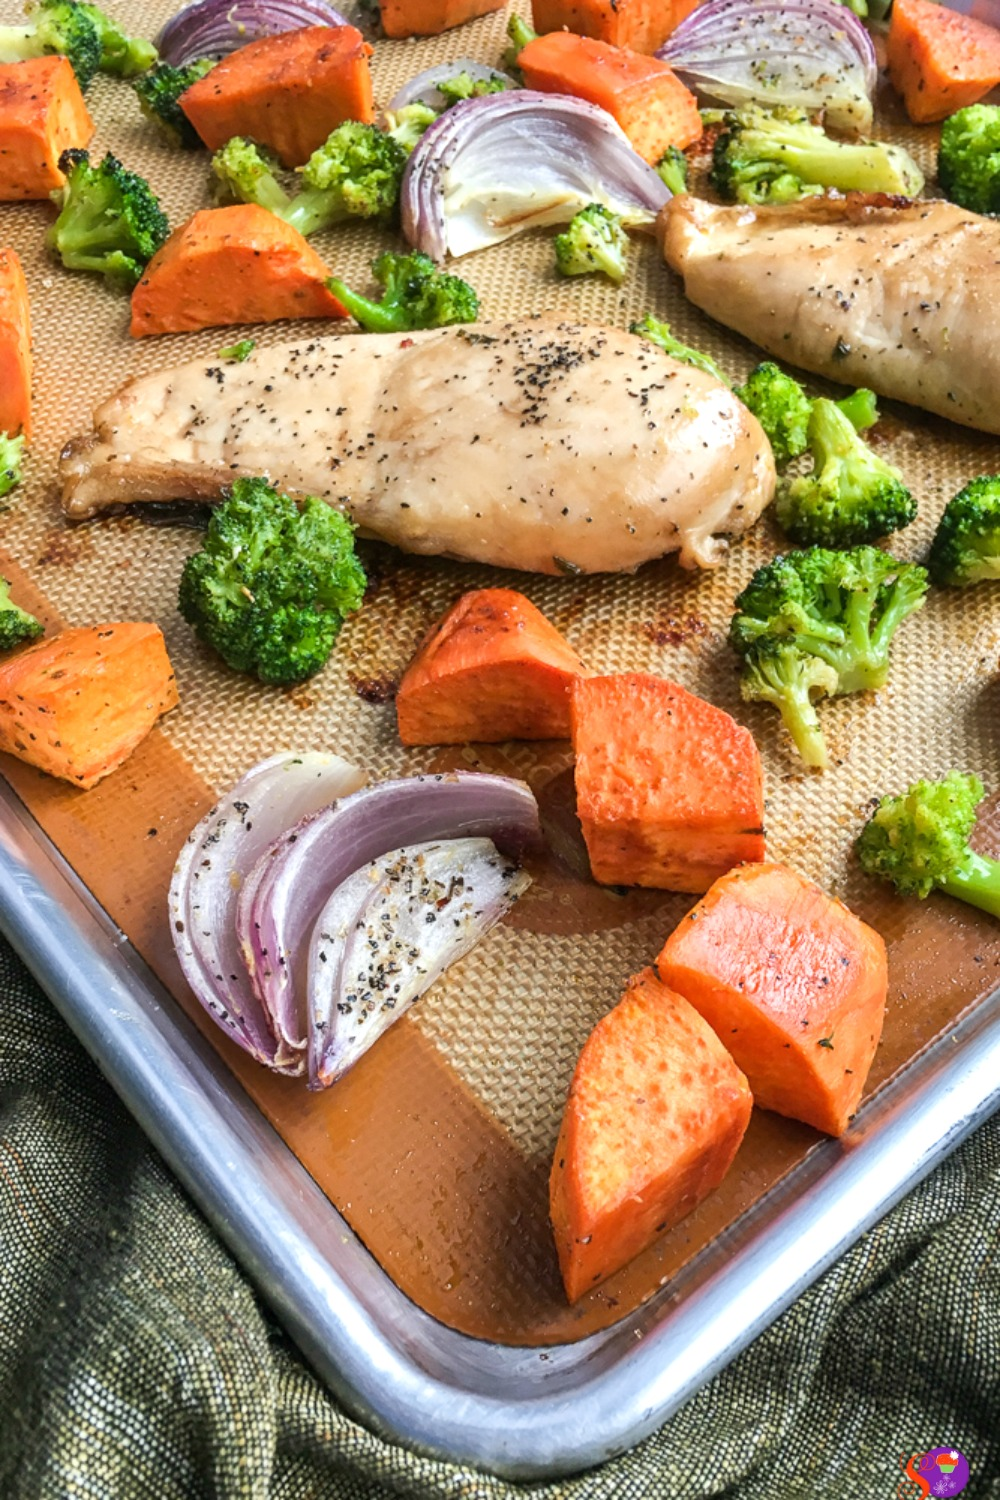 This delicious one-sheet dinner combines sweet potatoes, broccoli, red onion, carrots, and chicken breasts with a slightly sweet homemade balsamic marinade that practically begs to be eaten!